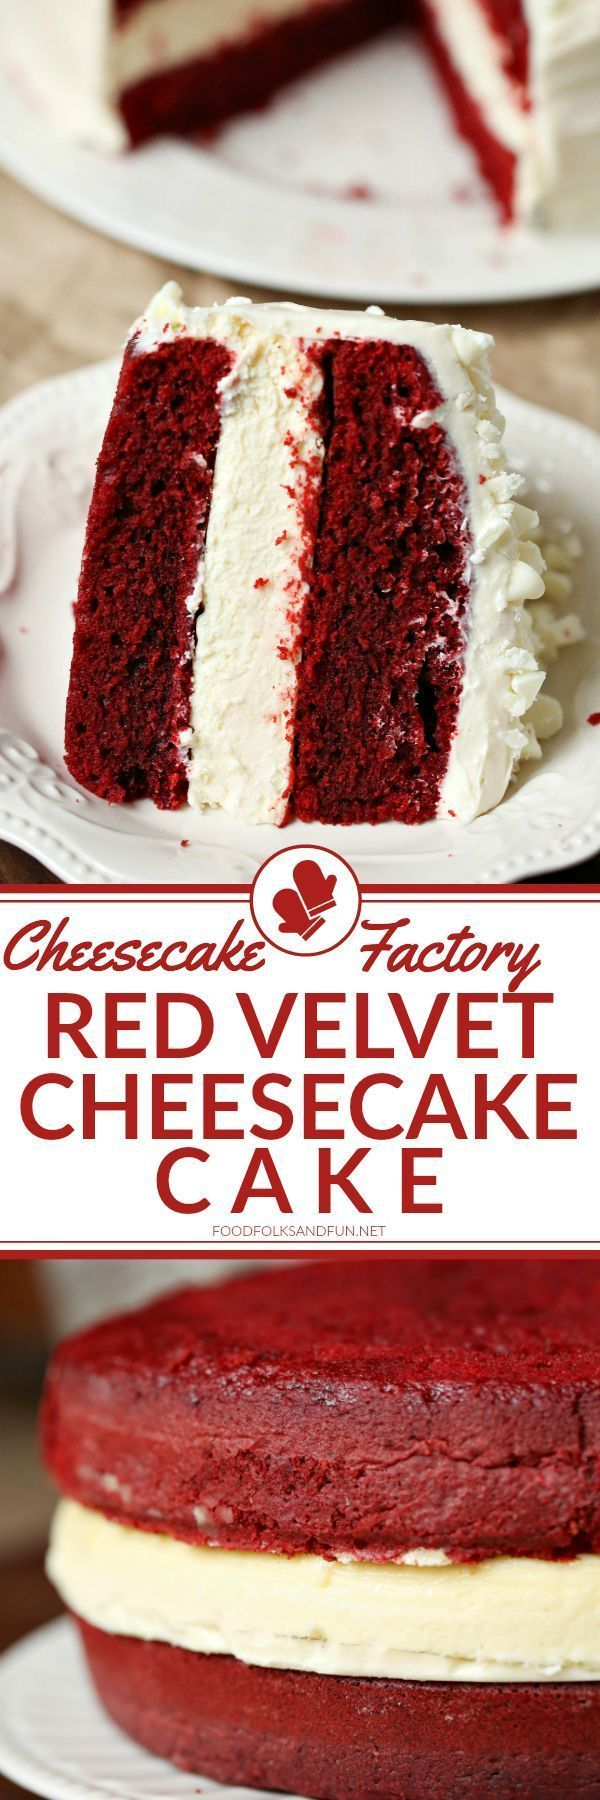 Best 25 wedding cheesecake ideas on pinterest for Simple valentines day dinner